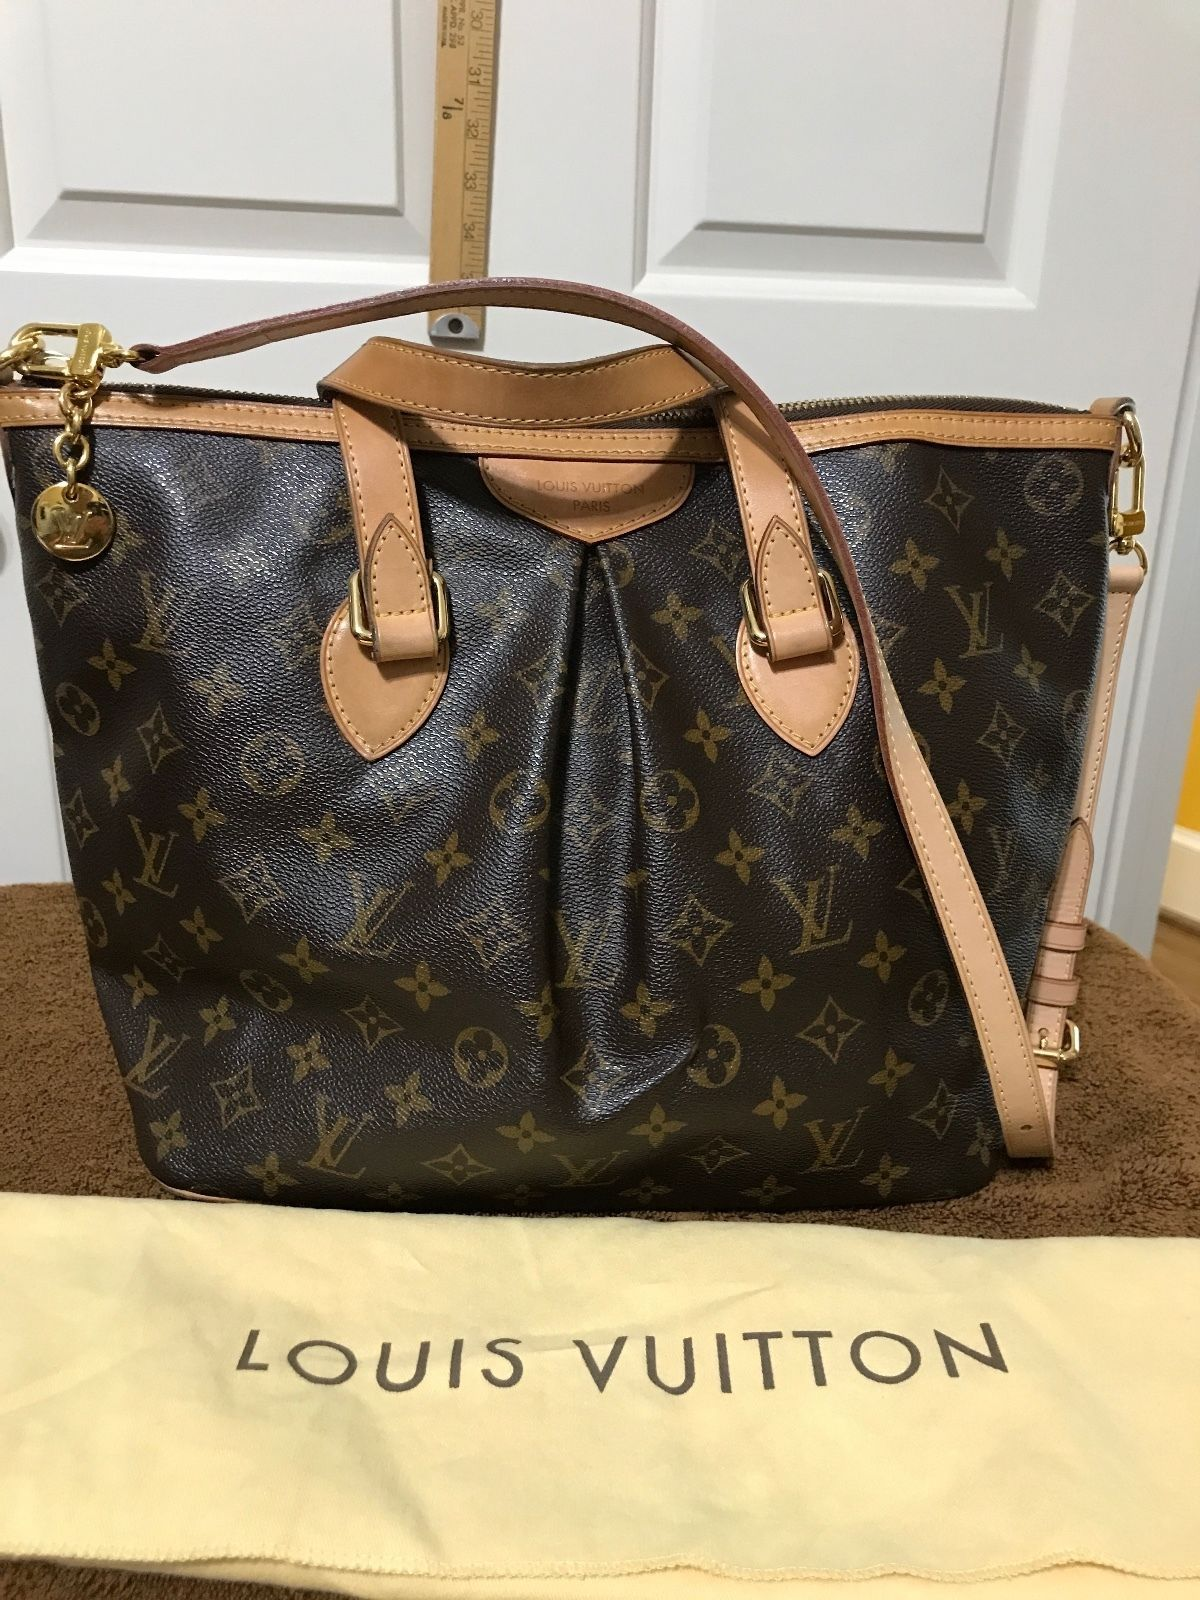 Louis Vuitton Tivoli Vs Palermo Louis Vuitton Palermo Brown Monogram Handbag 575 Louis